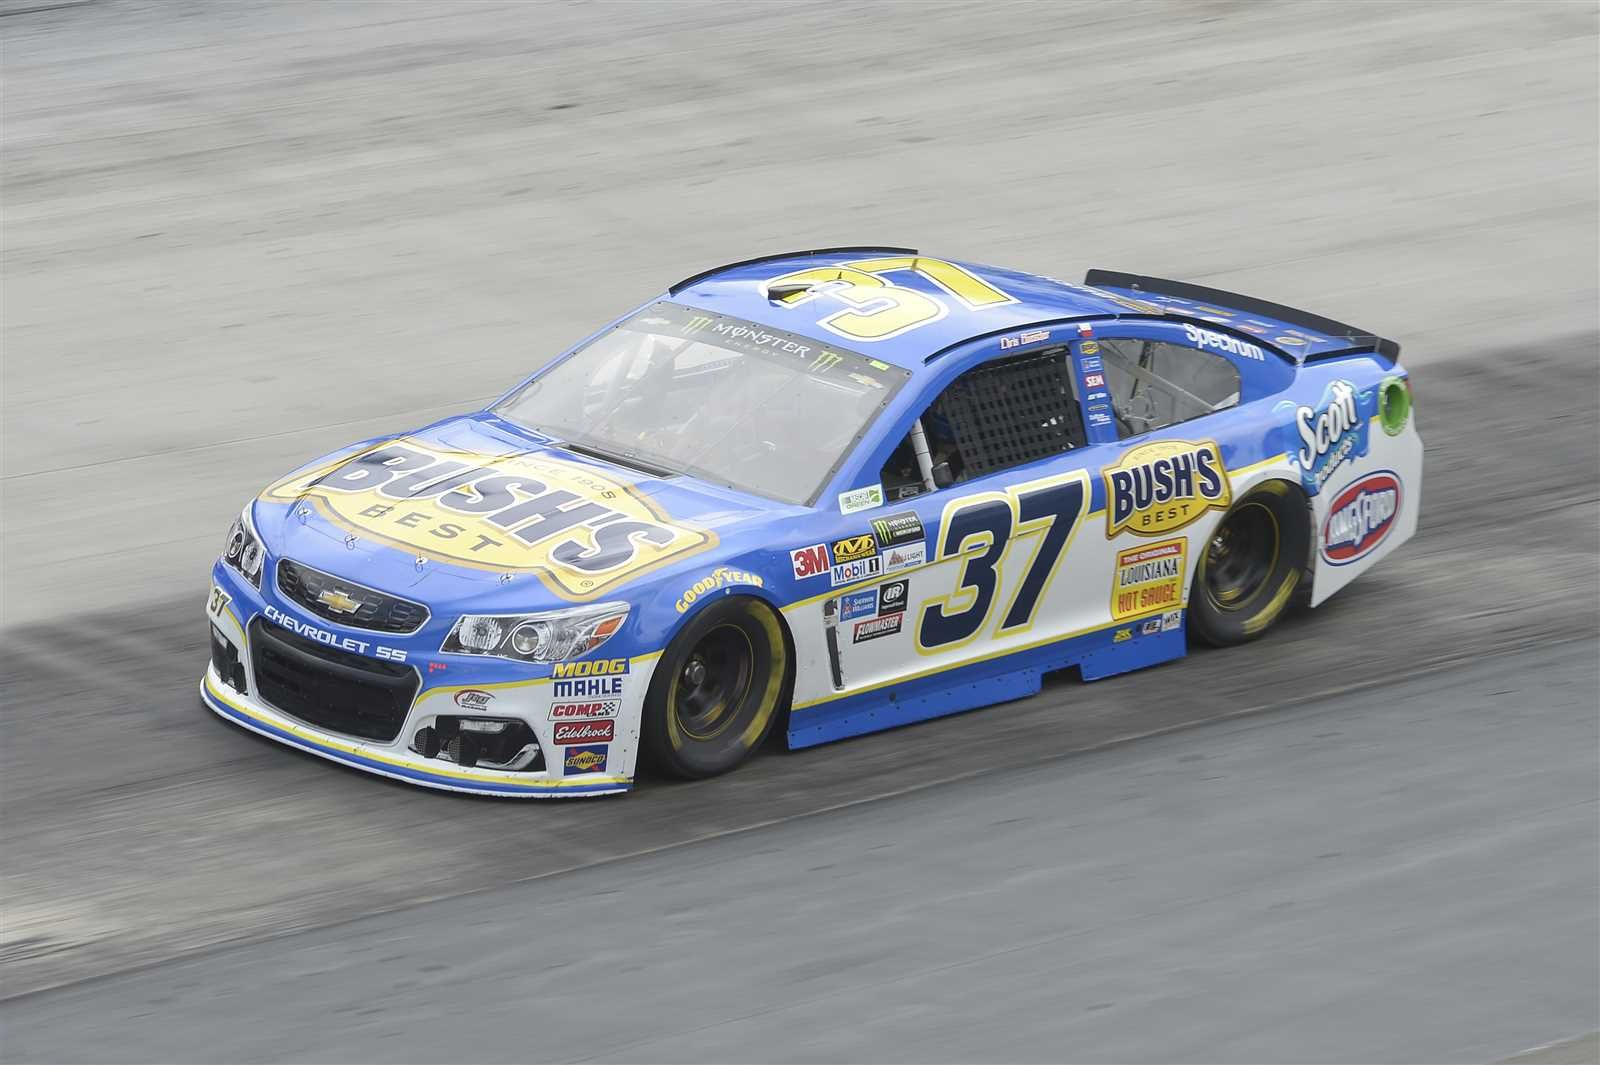 Food City 500 Bristol April 23 2017 Chris Buescher Will Start 27th In The No 37 Jtg Daugherty Racing Chevrolet Crew Chief T Owens Spotter David